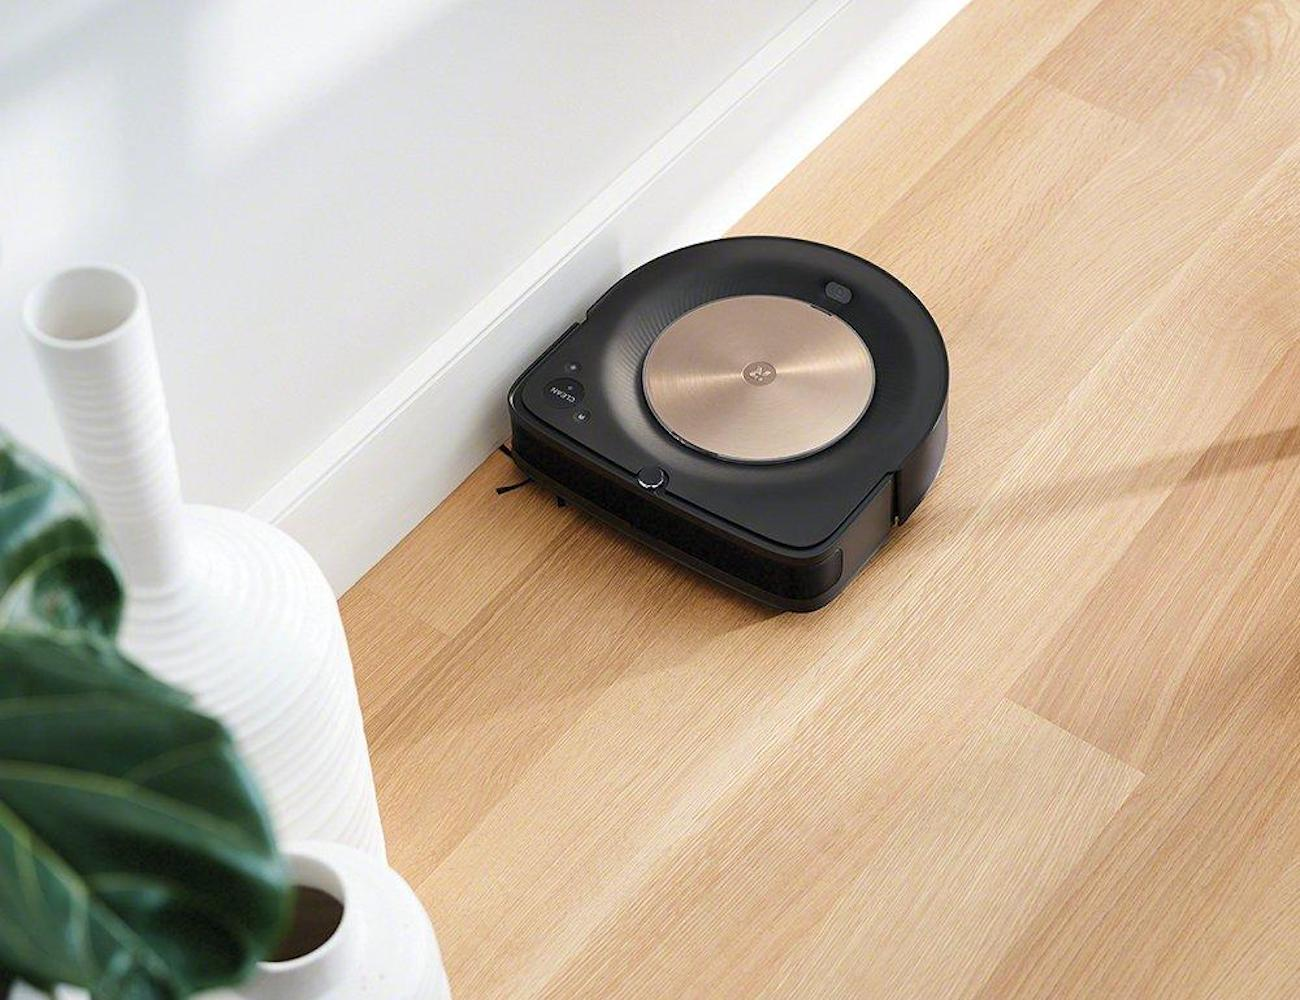 iRobot Roomba s9+ Automatic Dirt Disposal Vacuum can communicate with your mop